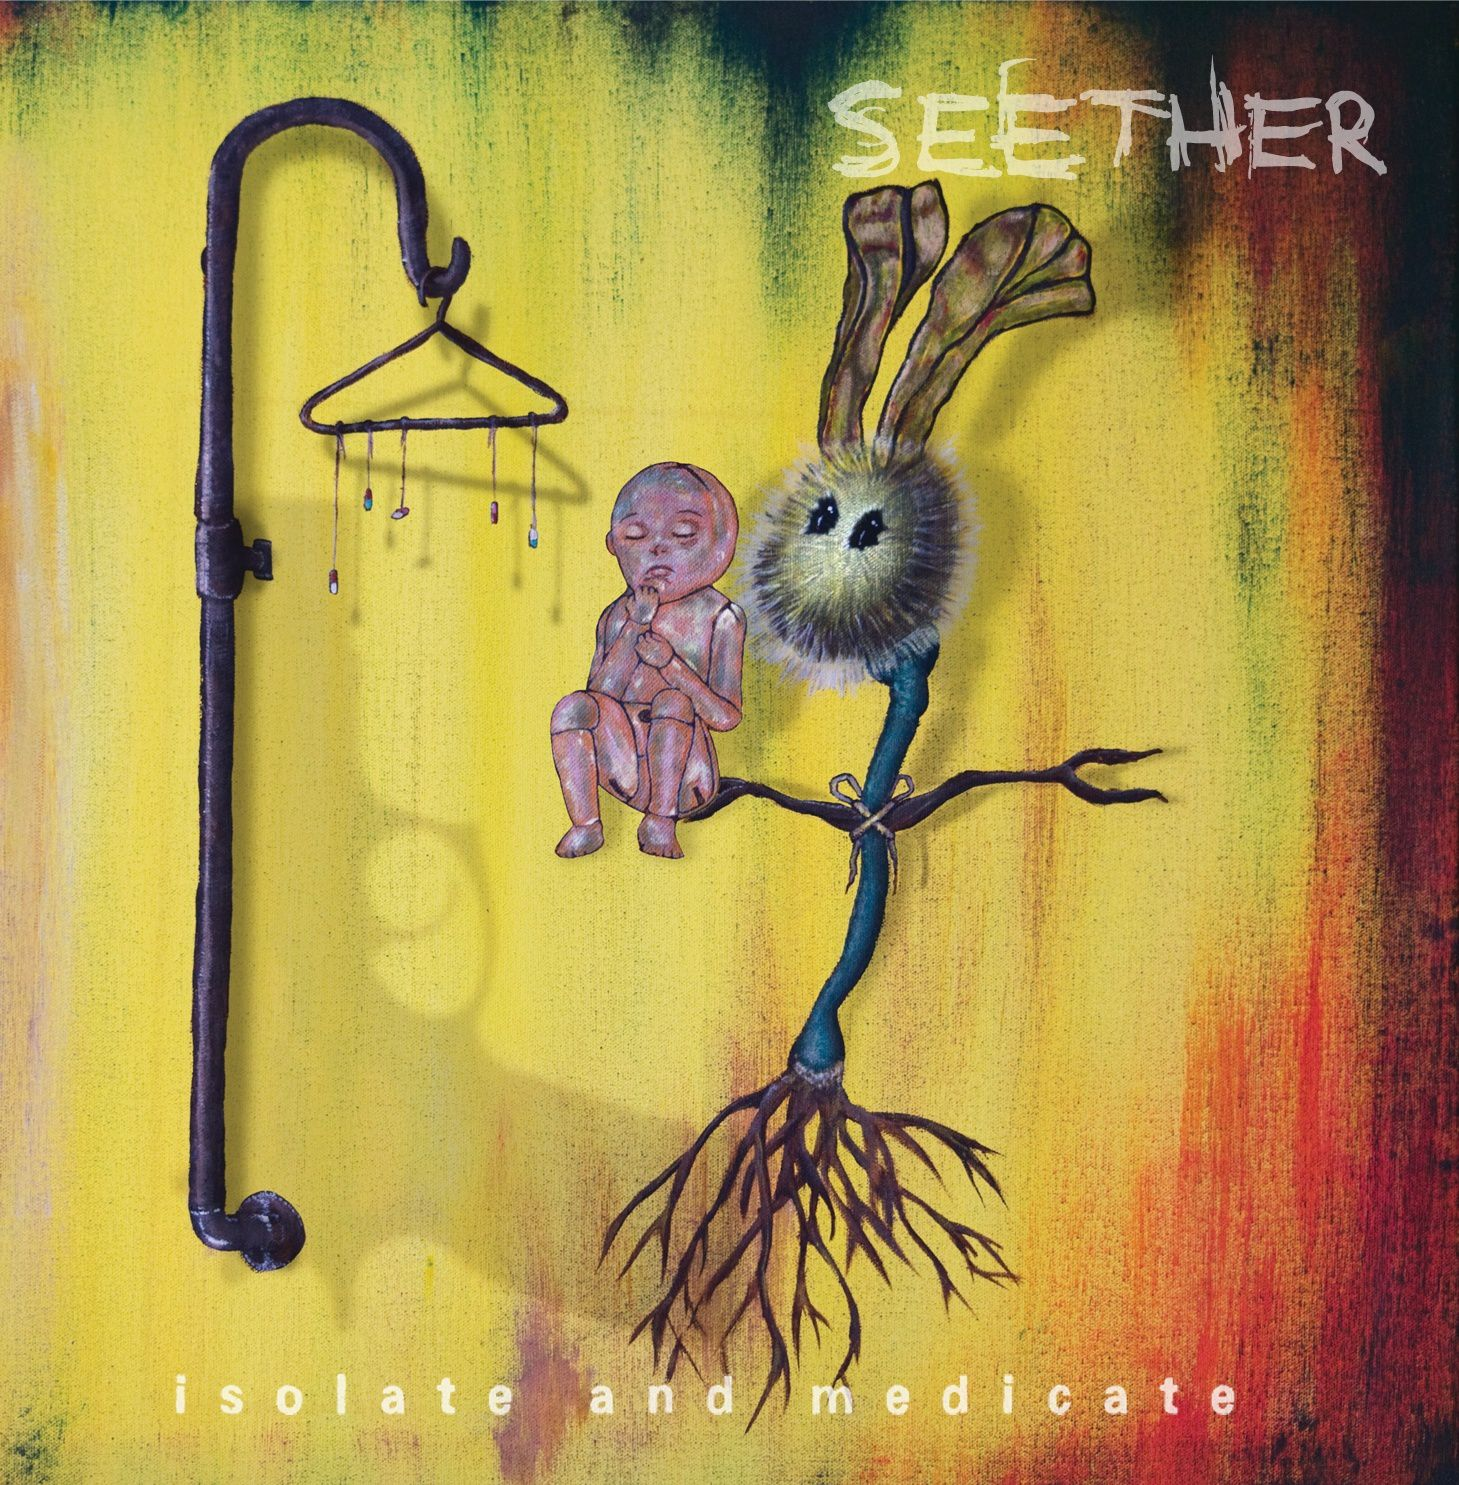 """CD review SEETHER """"Isolate and medicate"""""""